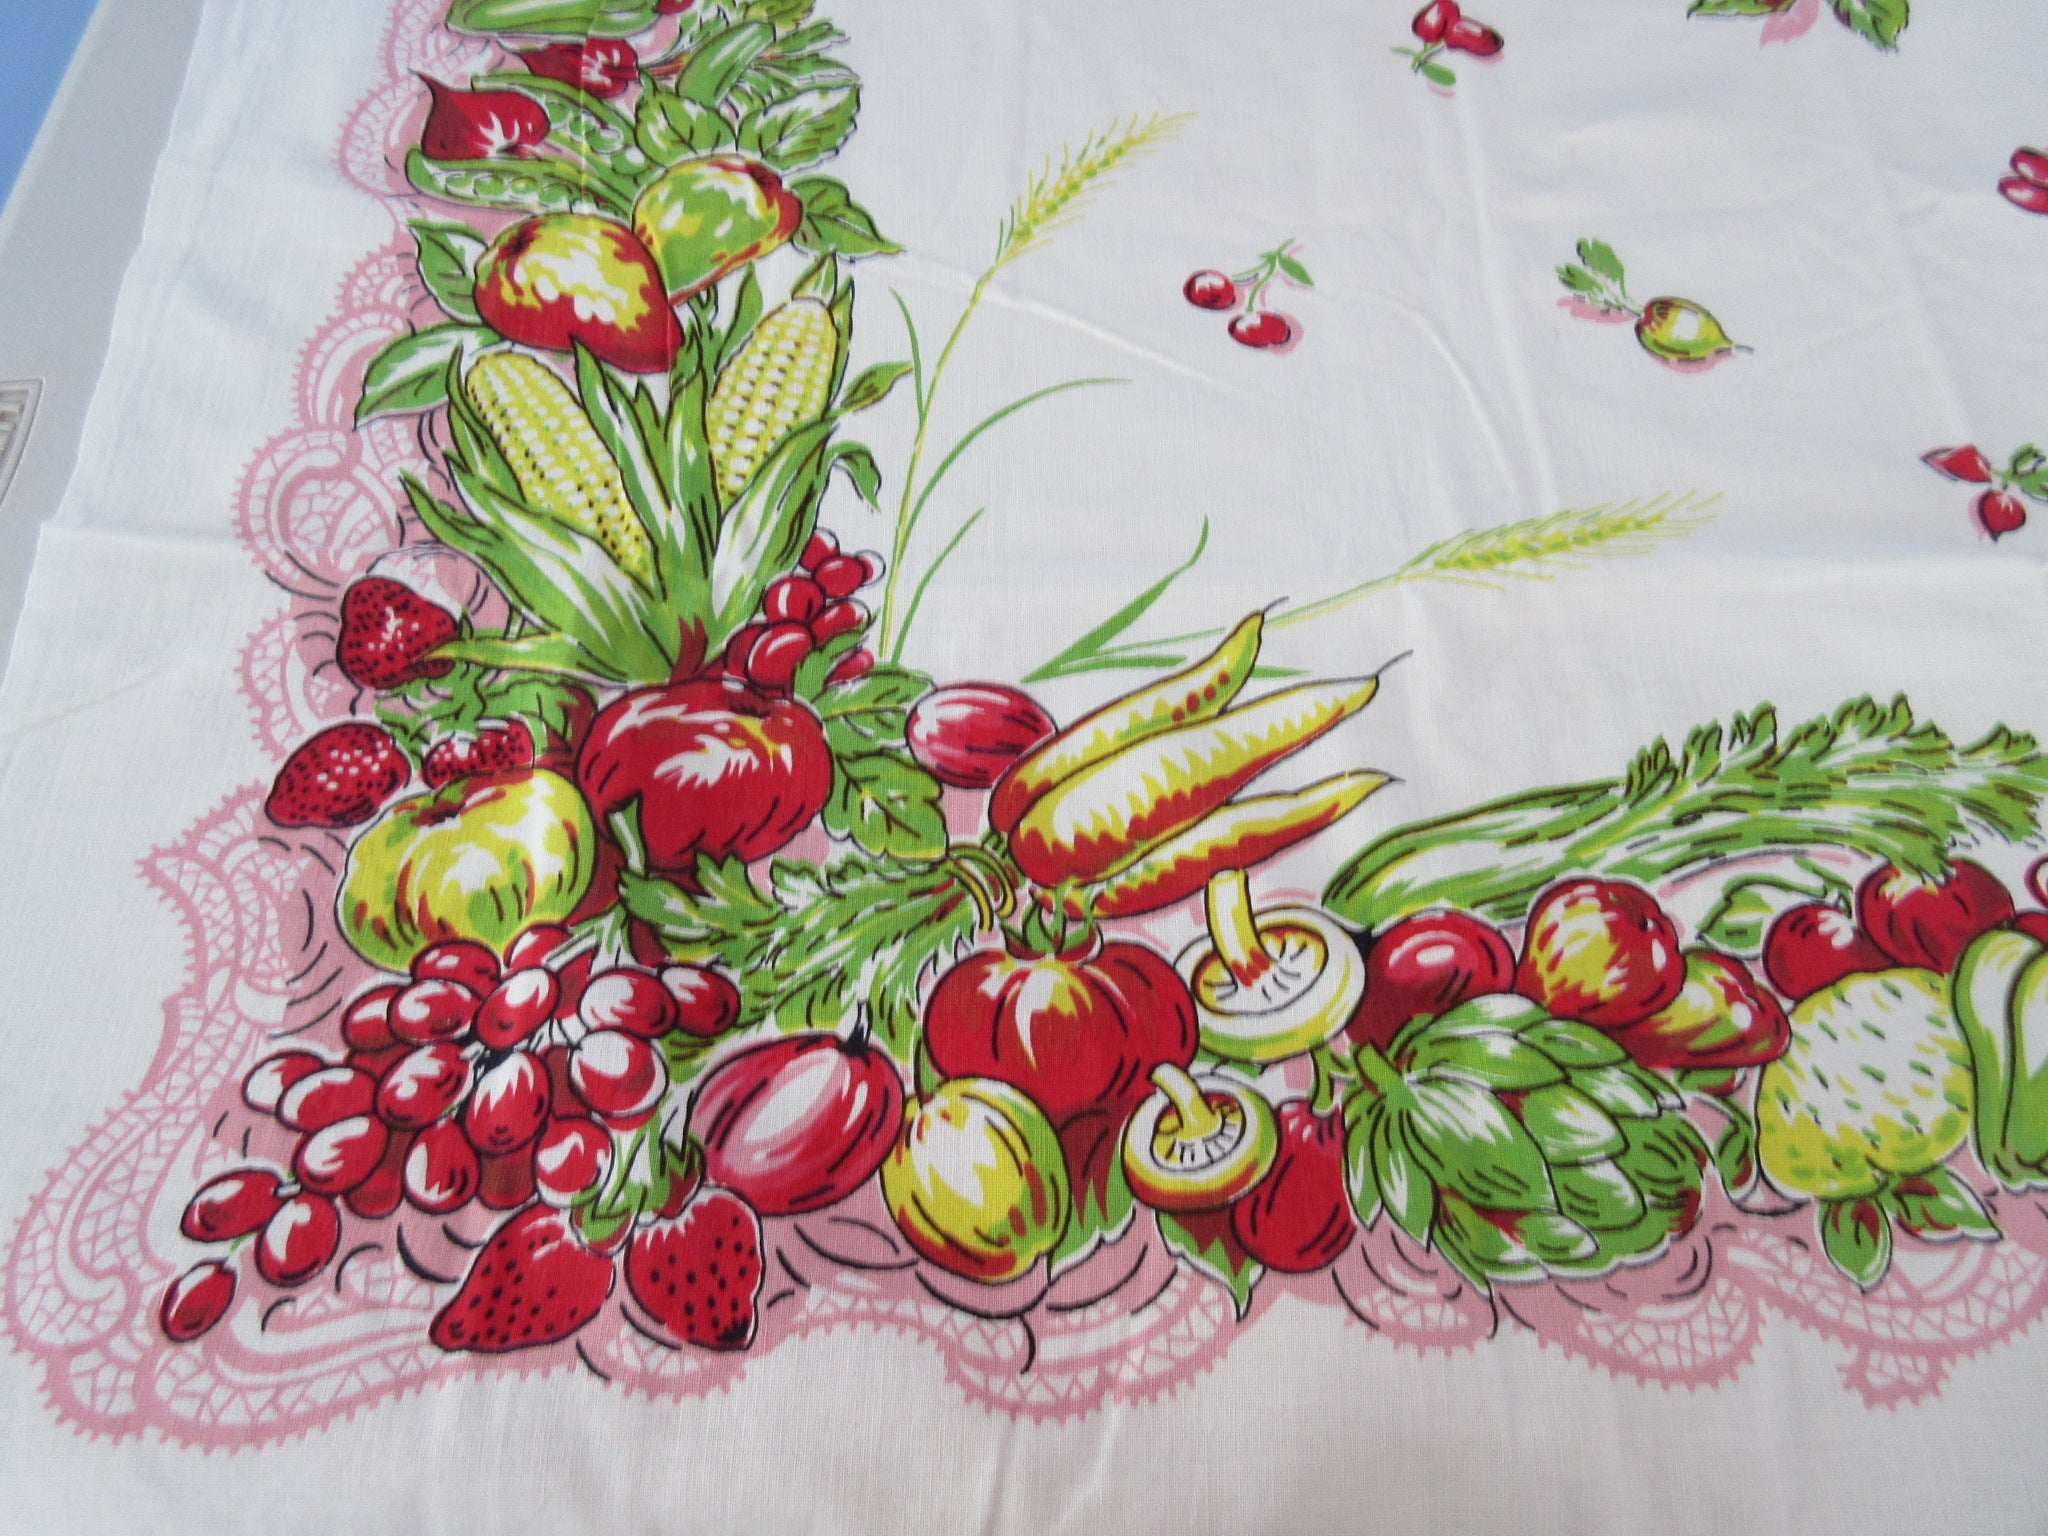 HTF Vegetables Fruits on Pink Lace Victory Garden Vintage Printed Tablecloth (51 X 50)